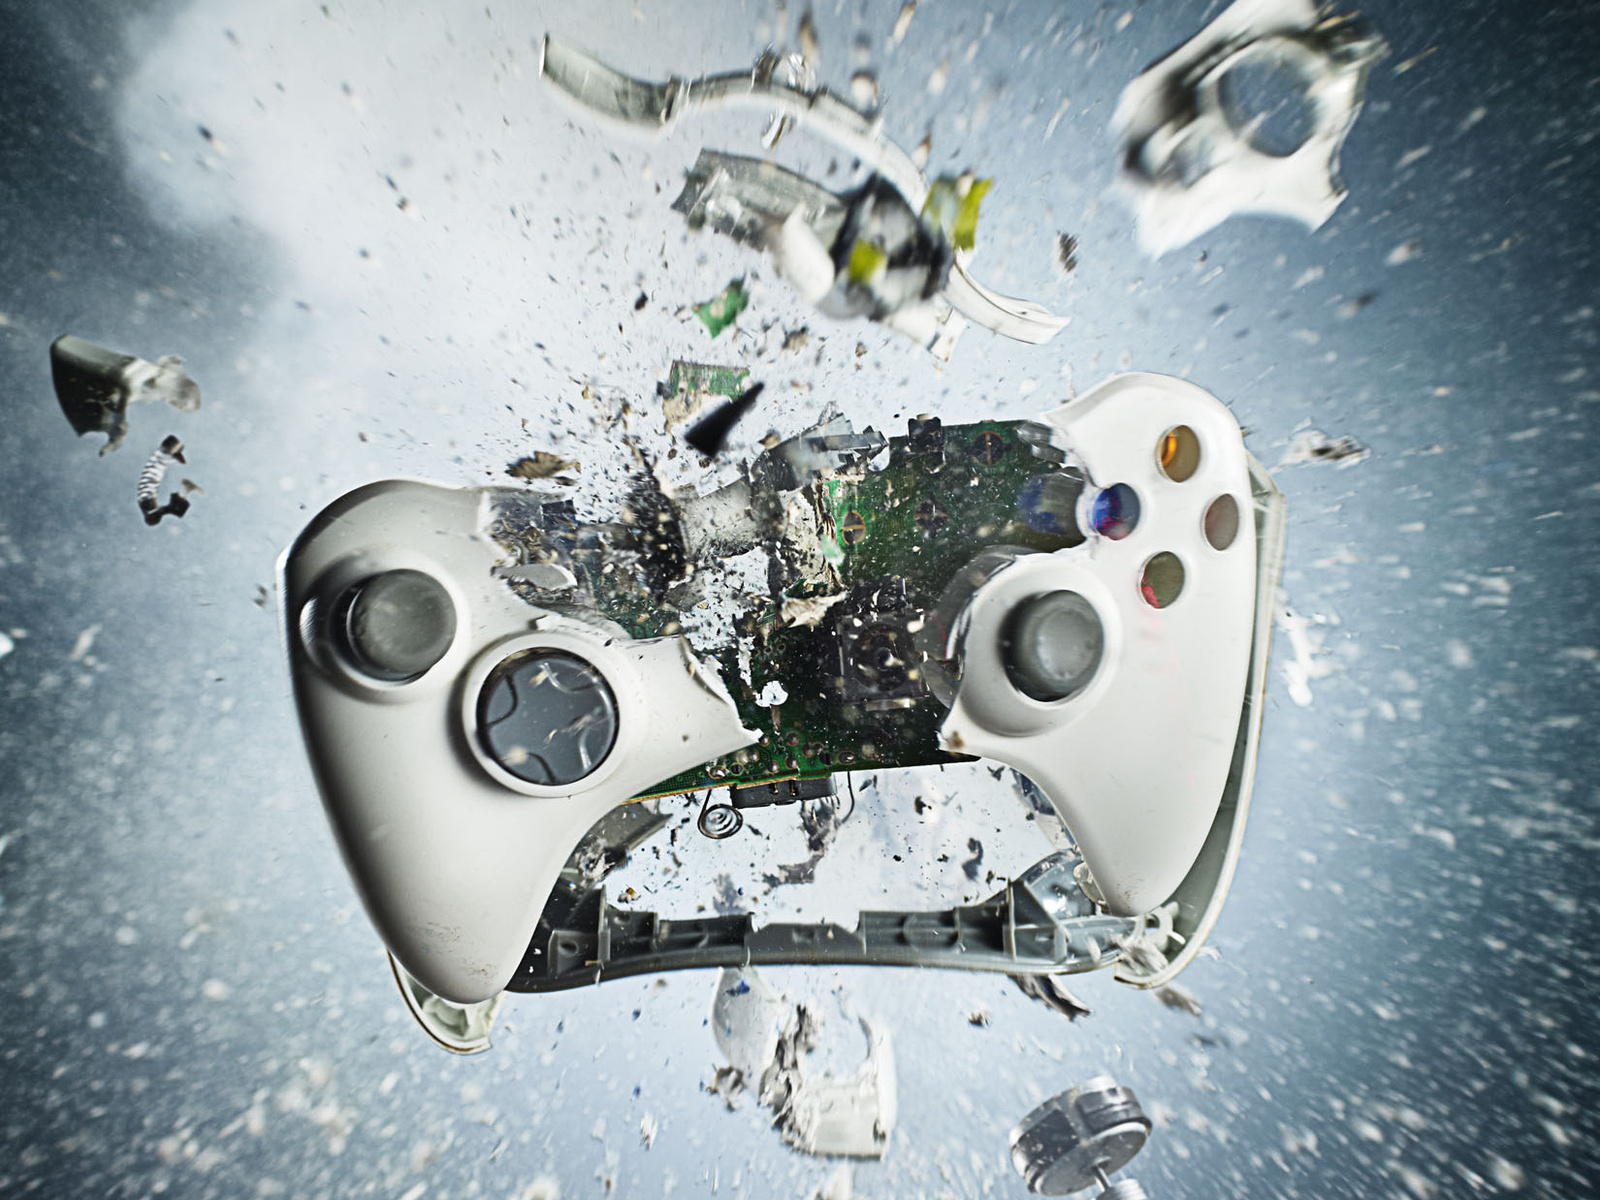 Gamer Thug Controller Hd Wallpapers: Xbox Wallpaper And Background Image